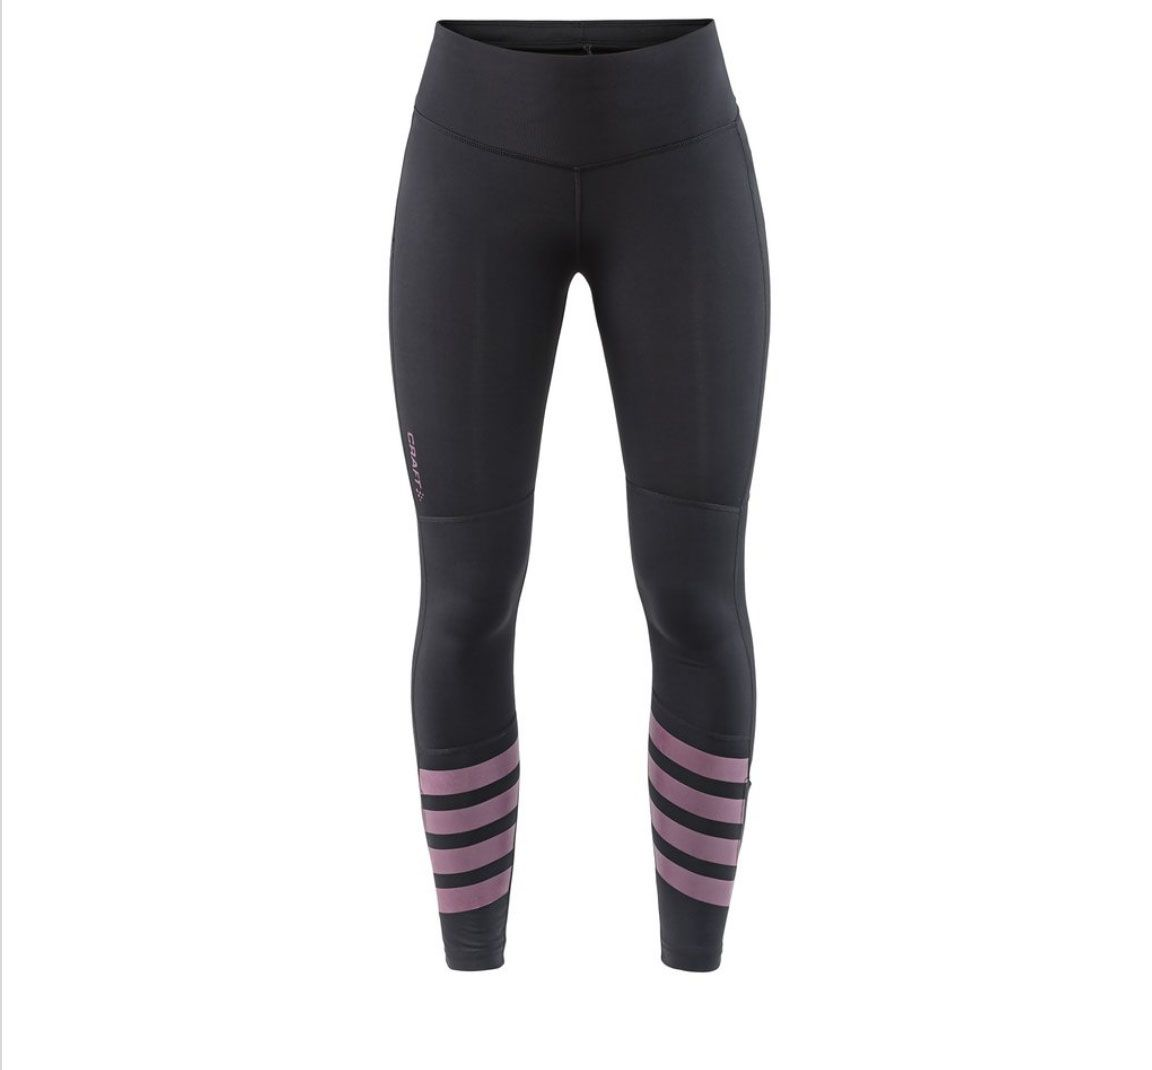 Craft Womens Essential Warm Training Soft Jersey Tights//Pants